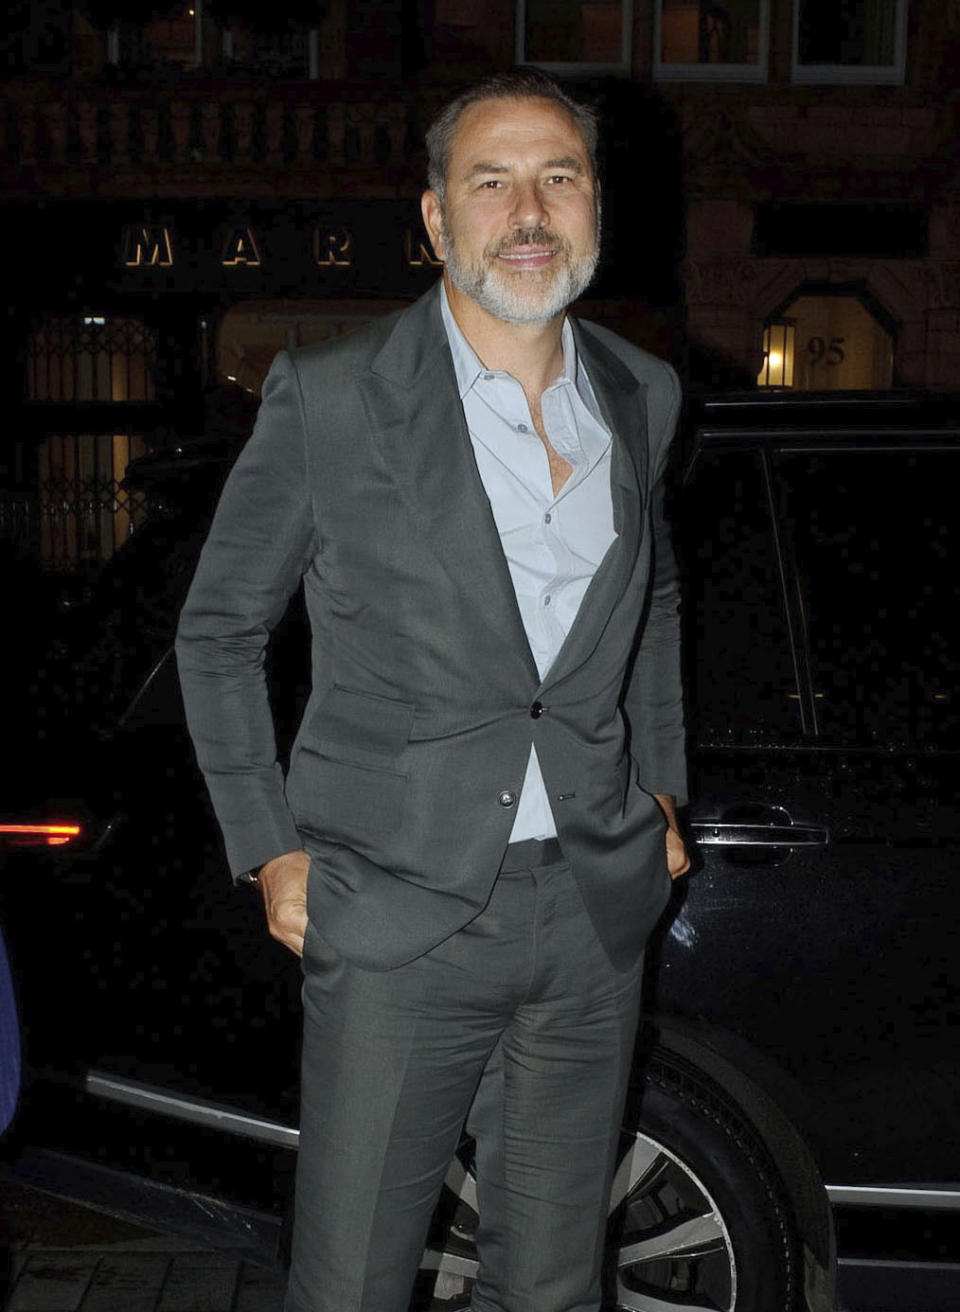 Photo by: zz/KGC-81/STAR MAX/IPx 2020 9/3/20 David Walliams is seen arriving at Scott's Seafood Restaurant in Mayfair, London, England, UK.